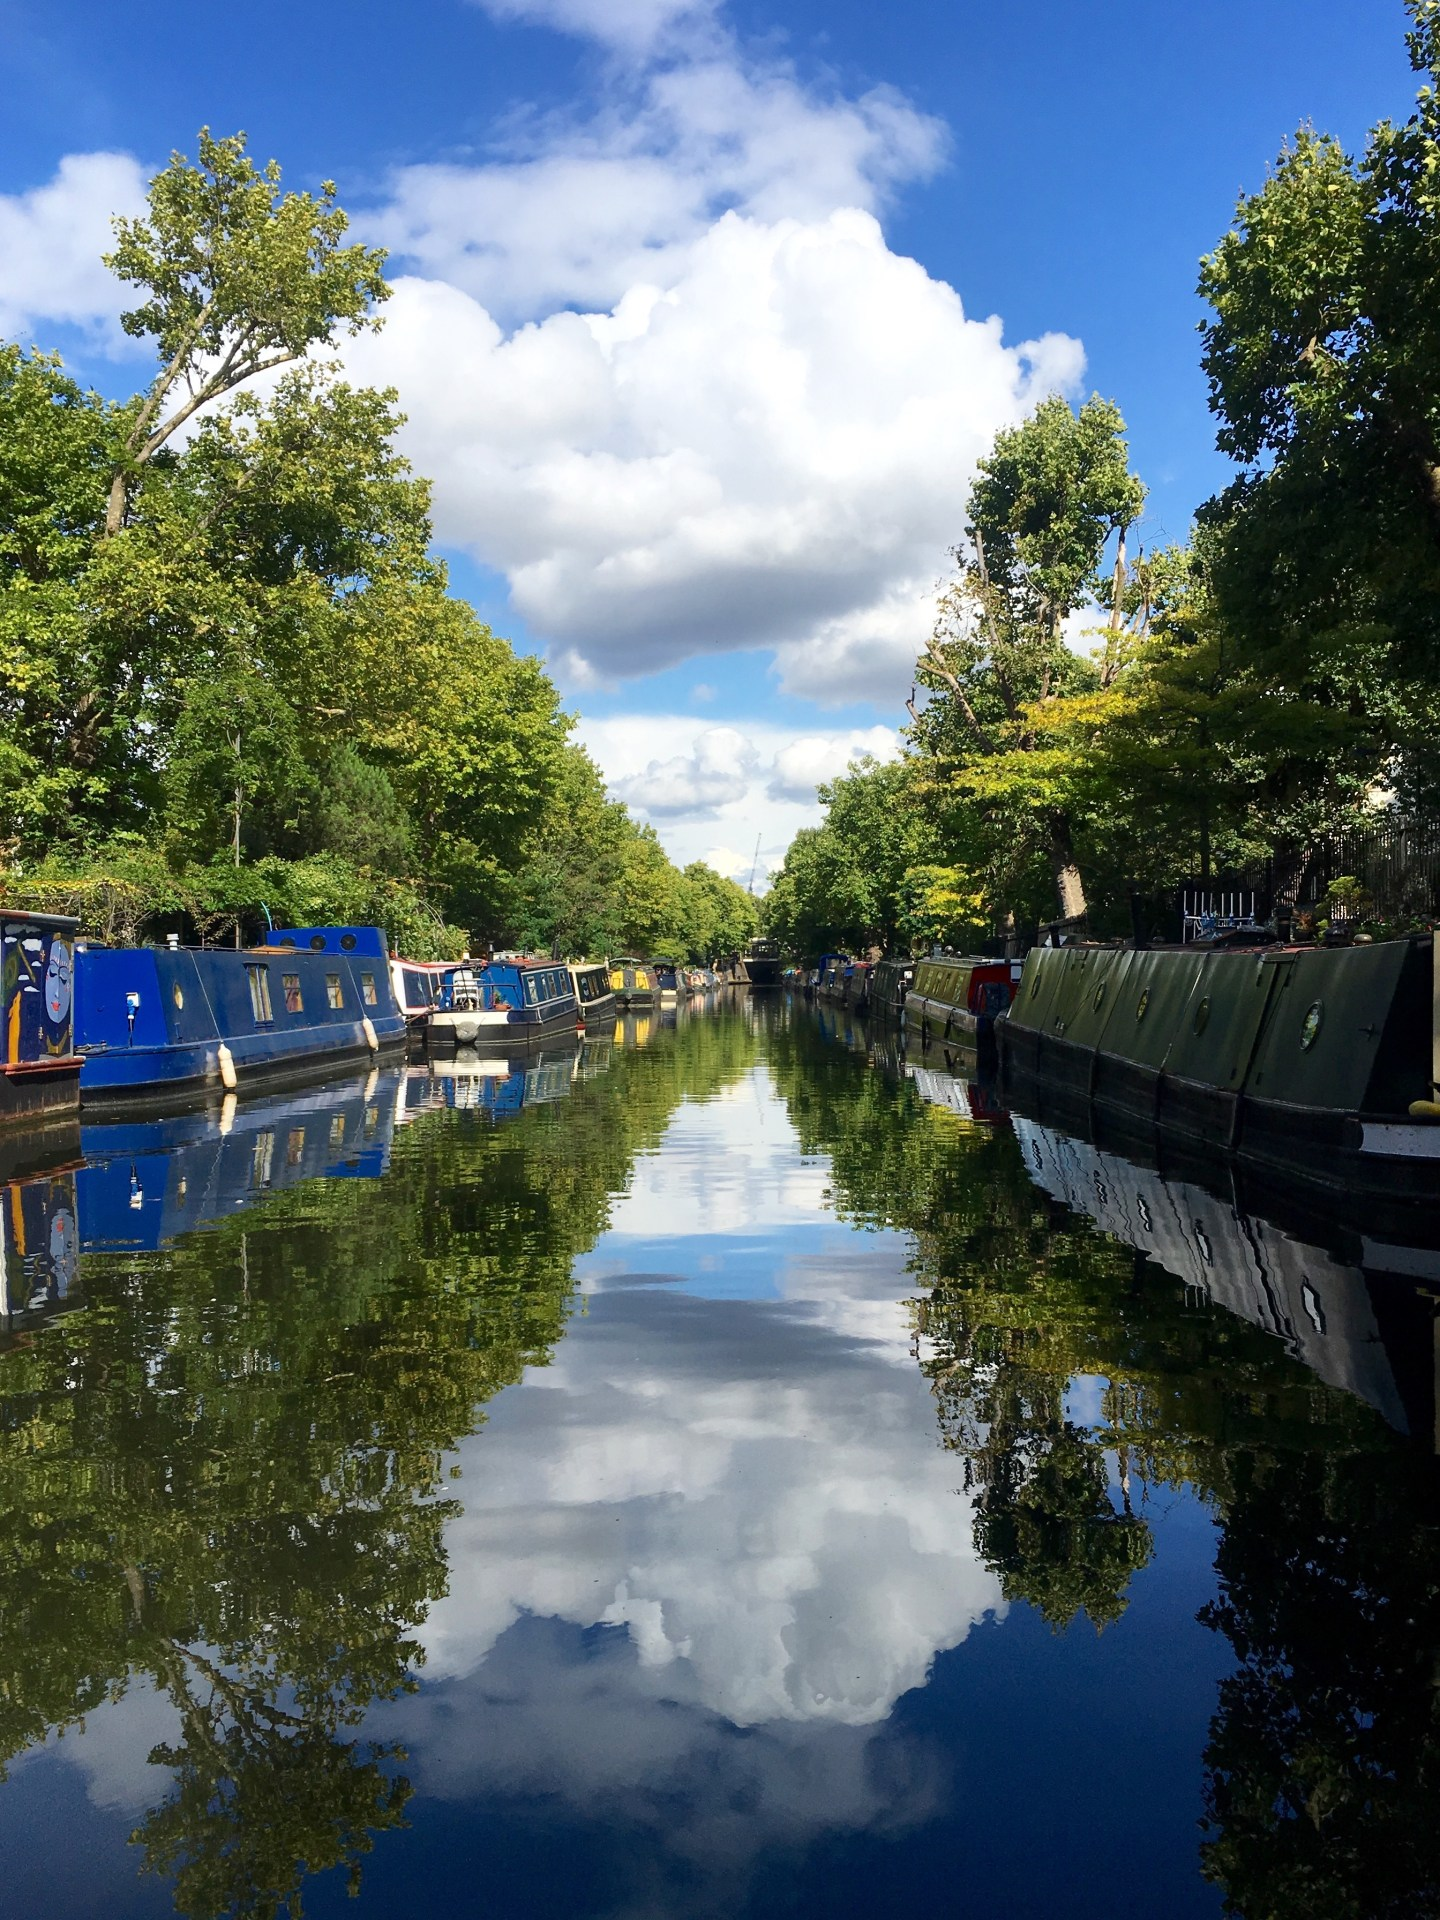 Things to Do in London: GoBoat on Regents Canal